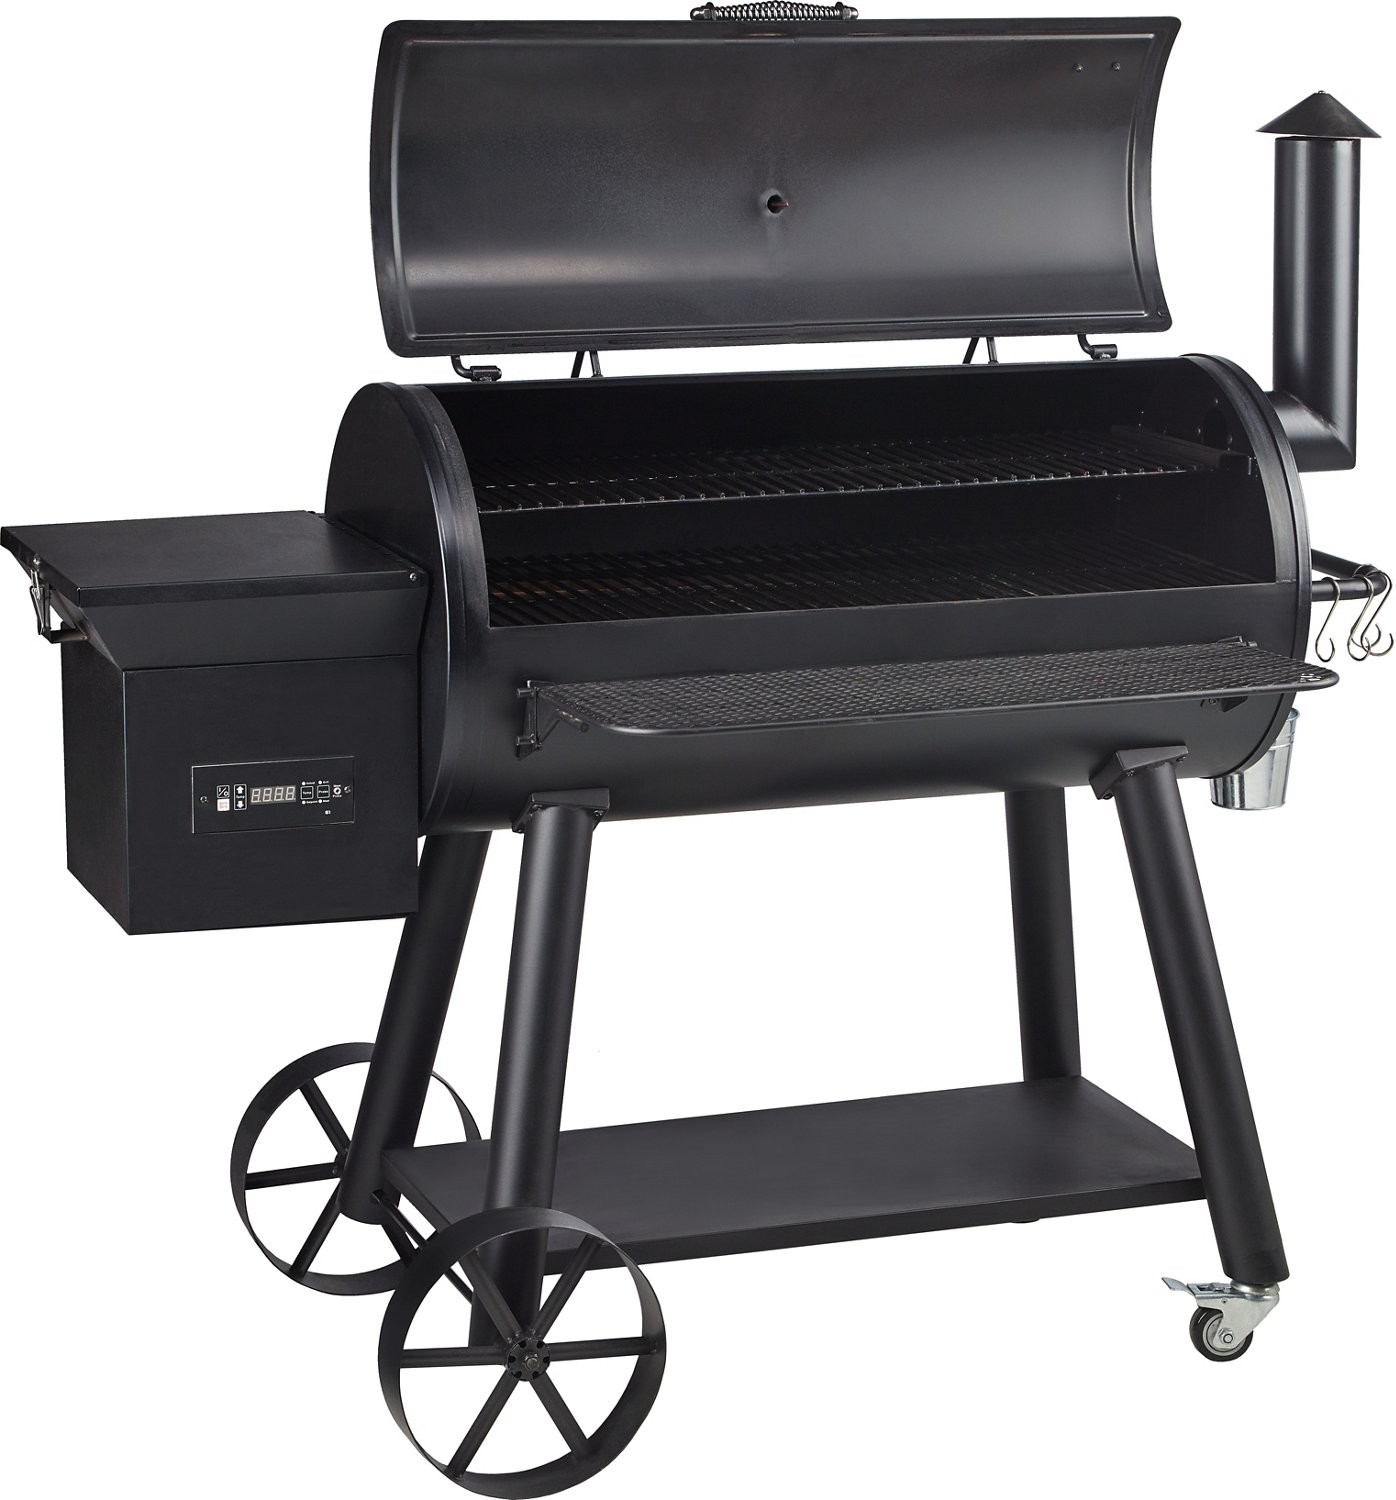 Kitchen Academy: Outdoor Gourmet Triton XL Pellet Grill